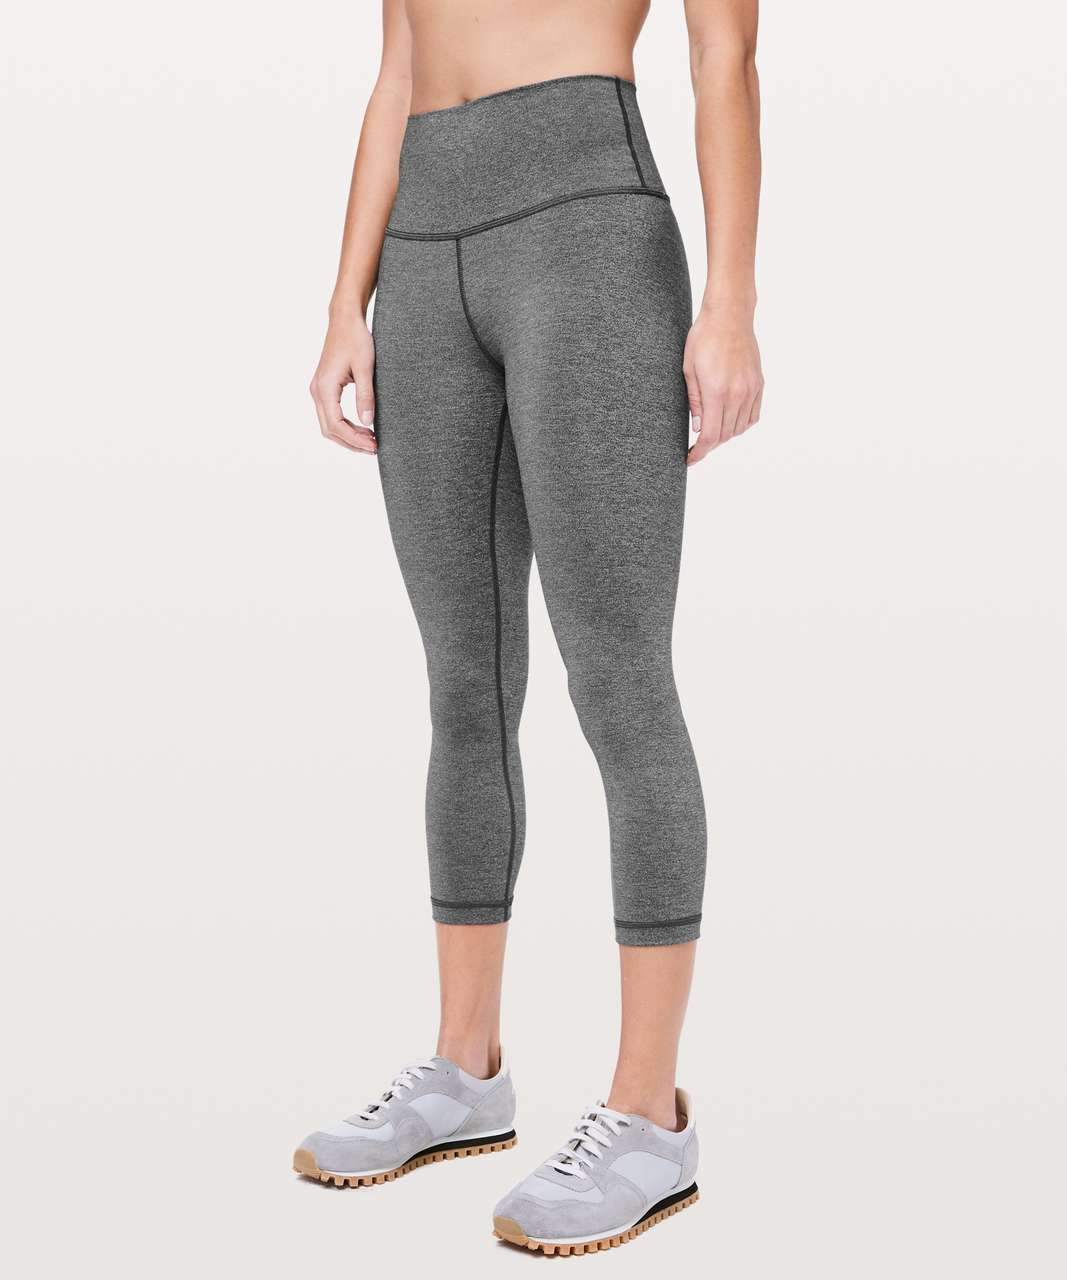 "Lululemon Wunder Under Crop (High-Rise) *Luxtreme 21"" - Heathered Black"